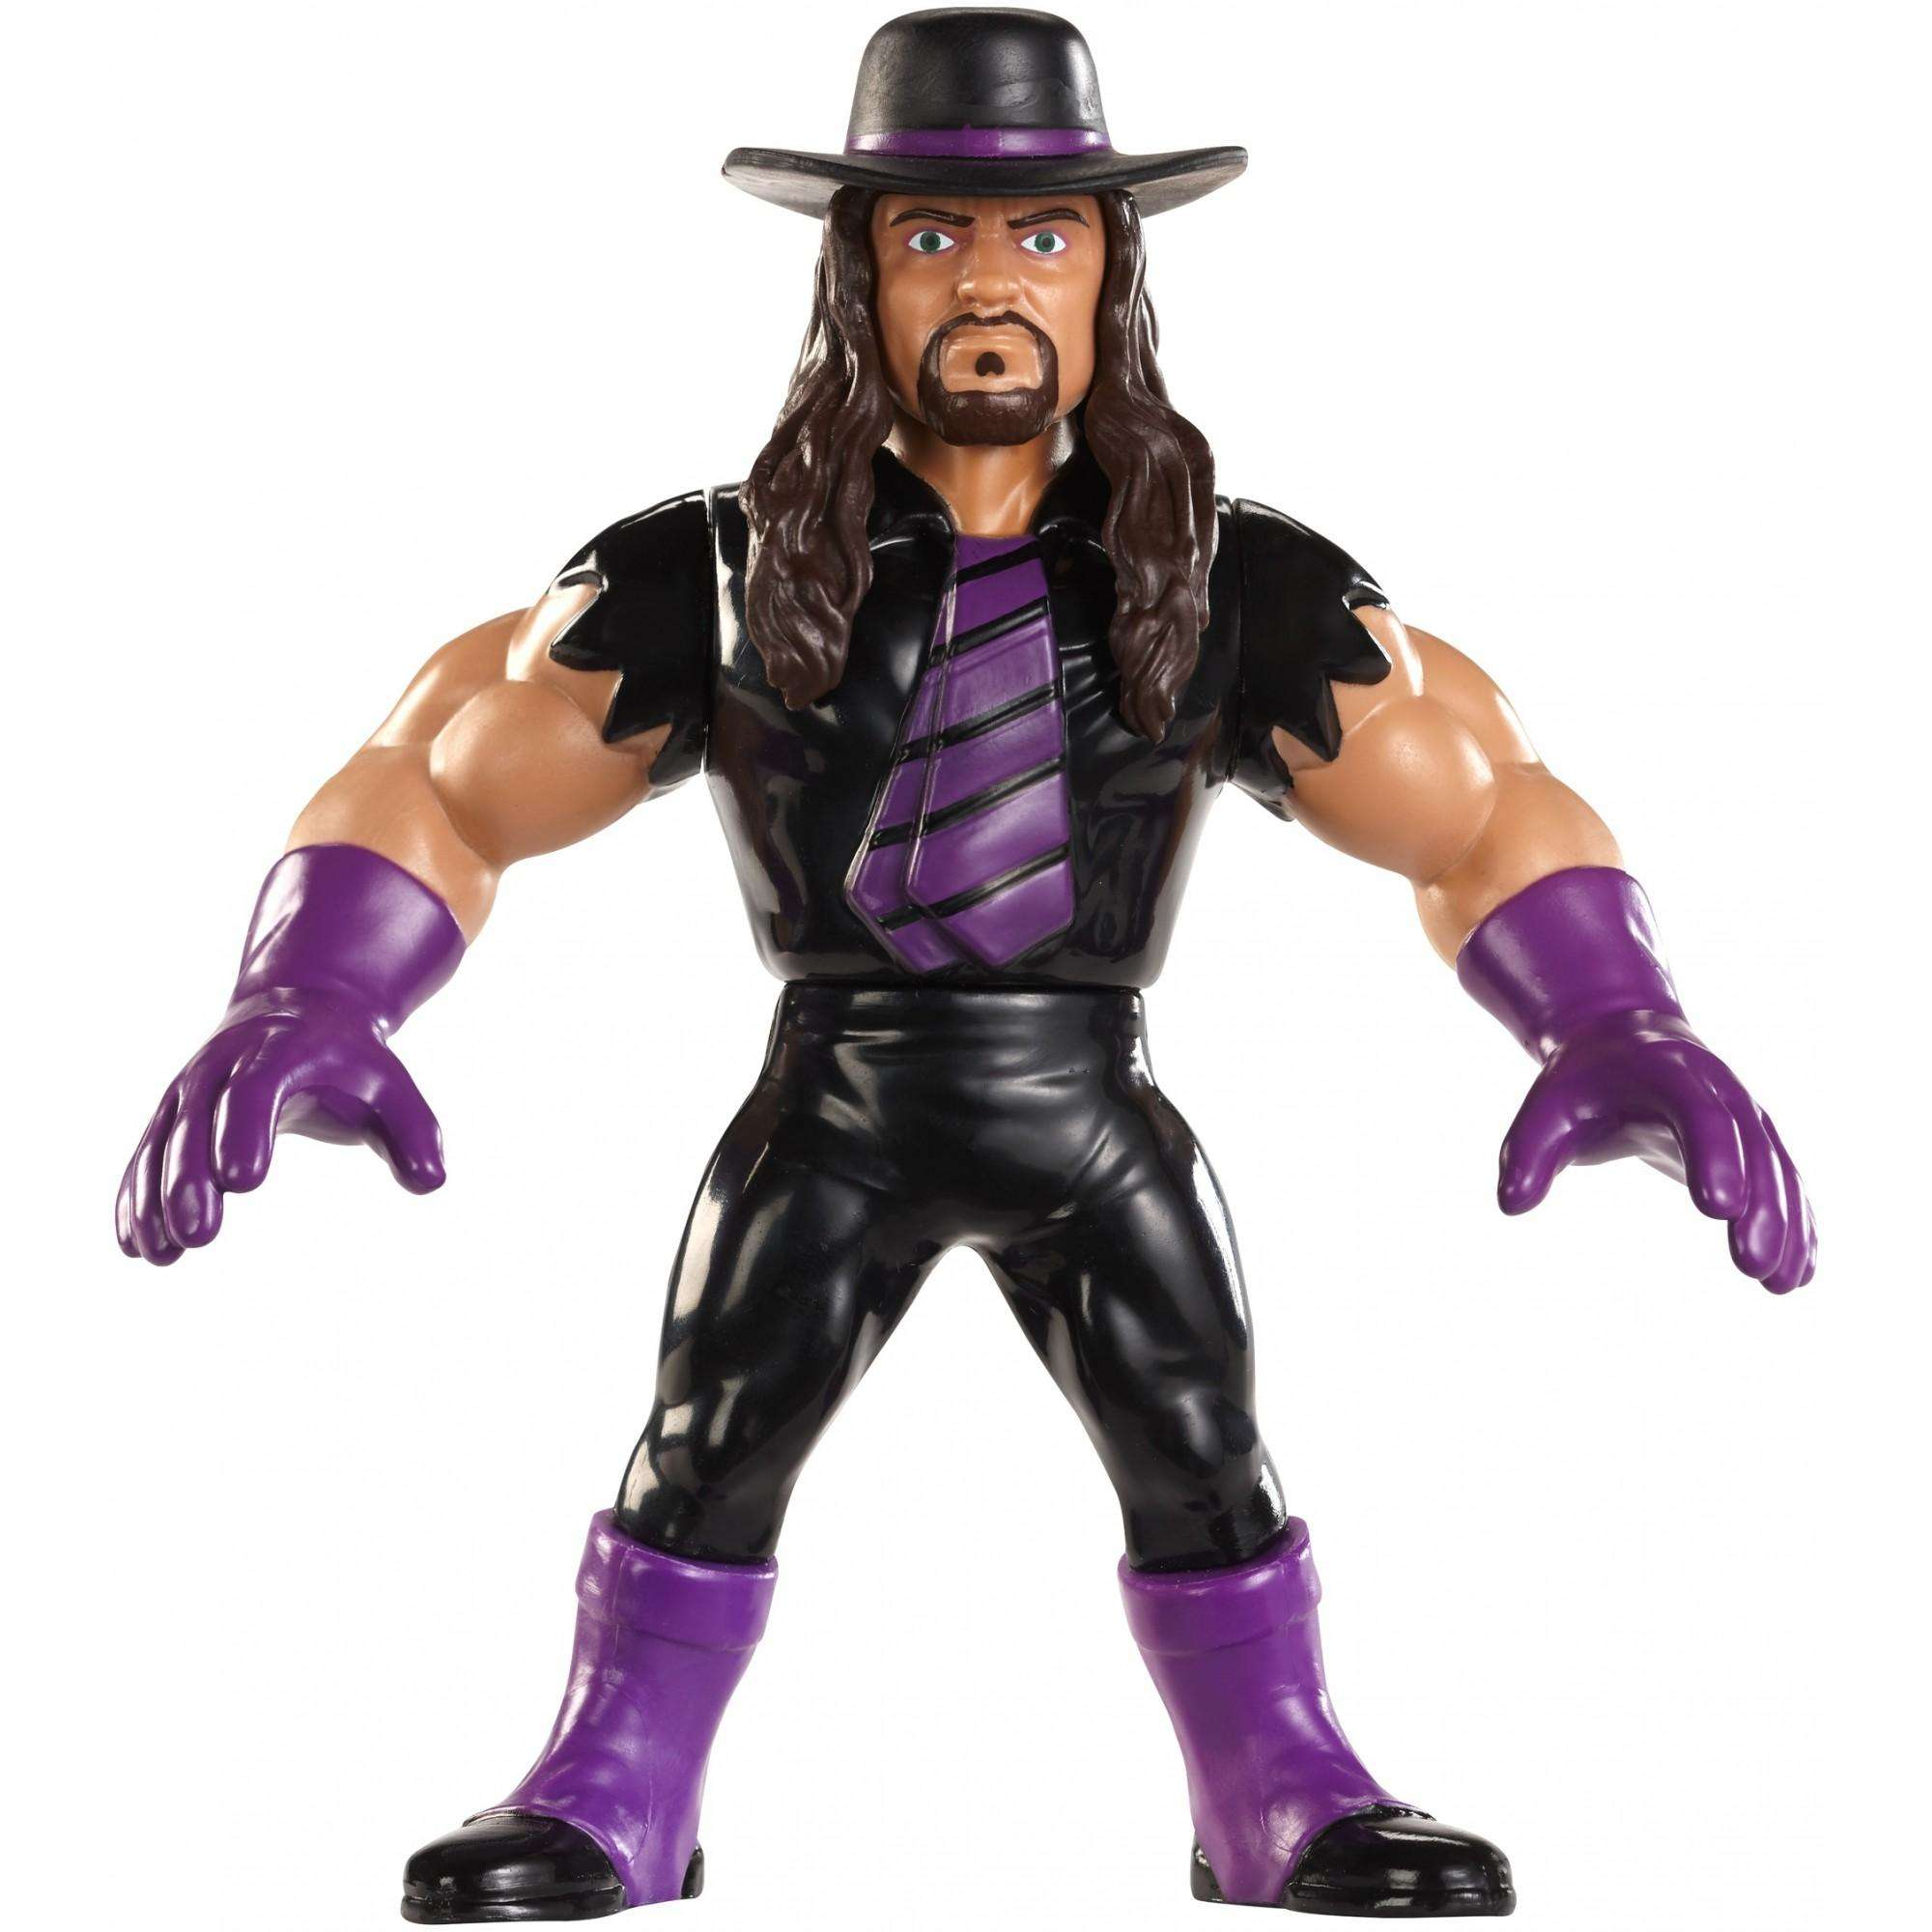 WWE Undertaker Retro Figure